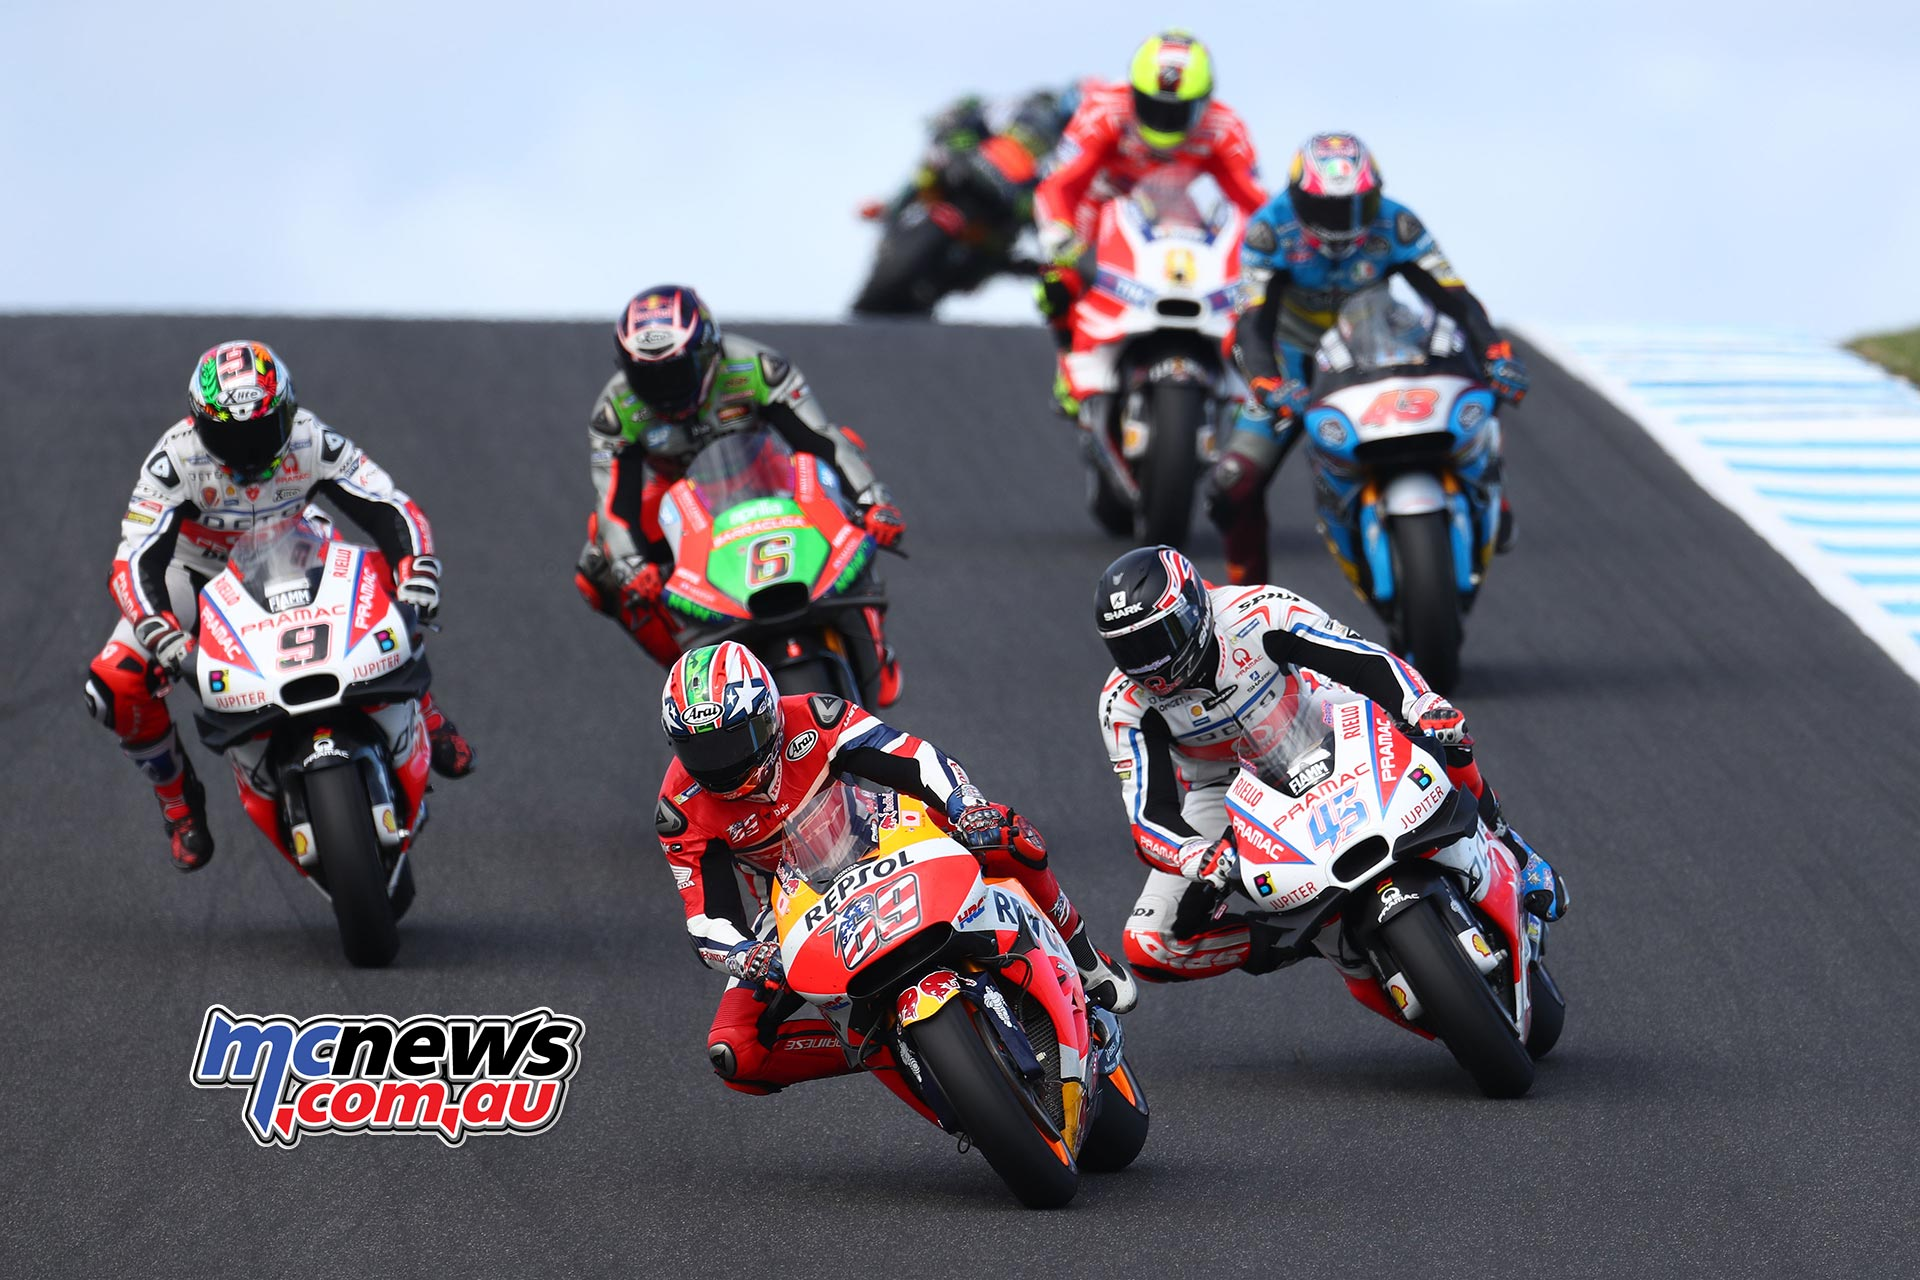 MotoGP returns to Phillip Island for the Australian round on October 20-22, 2017